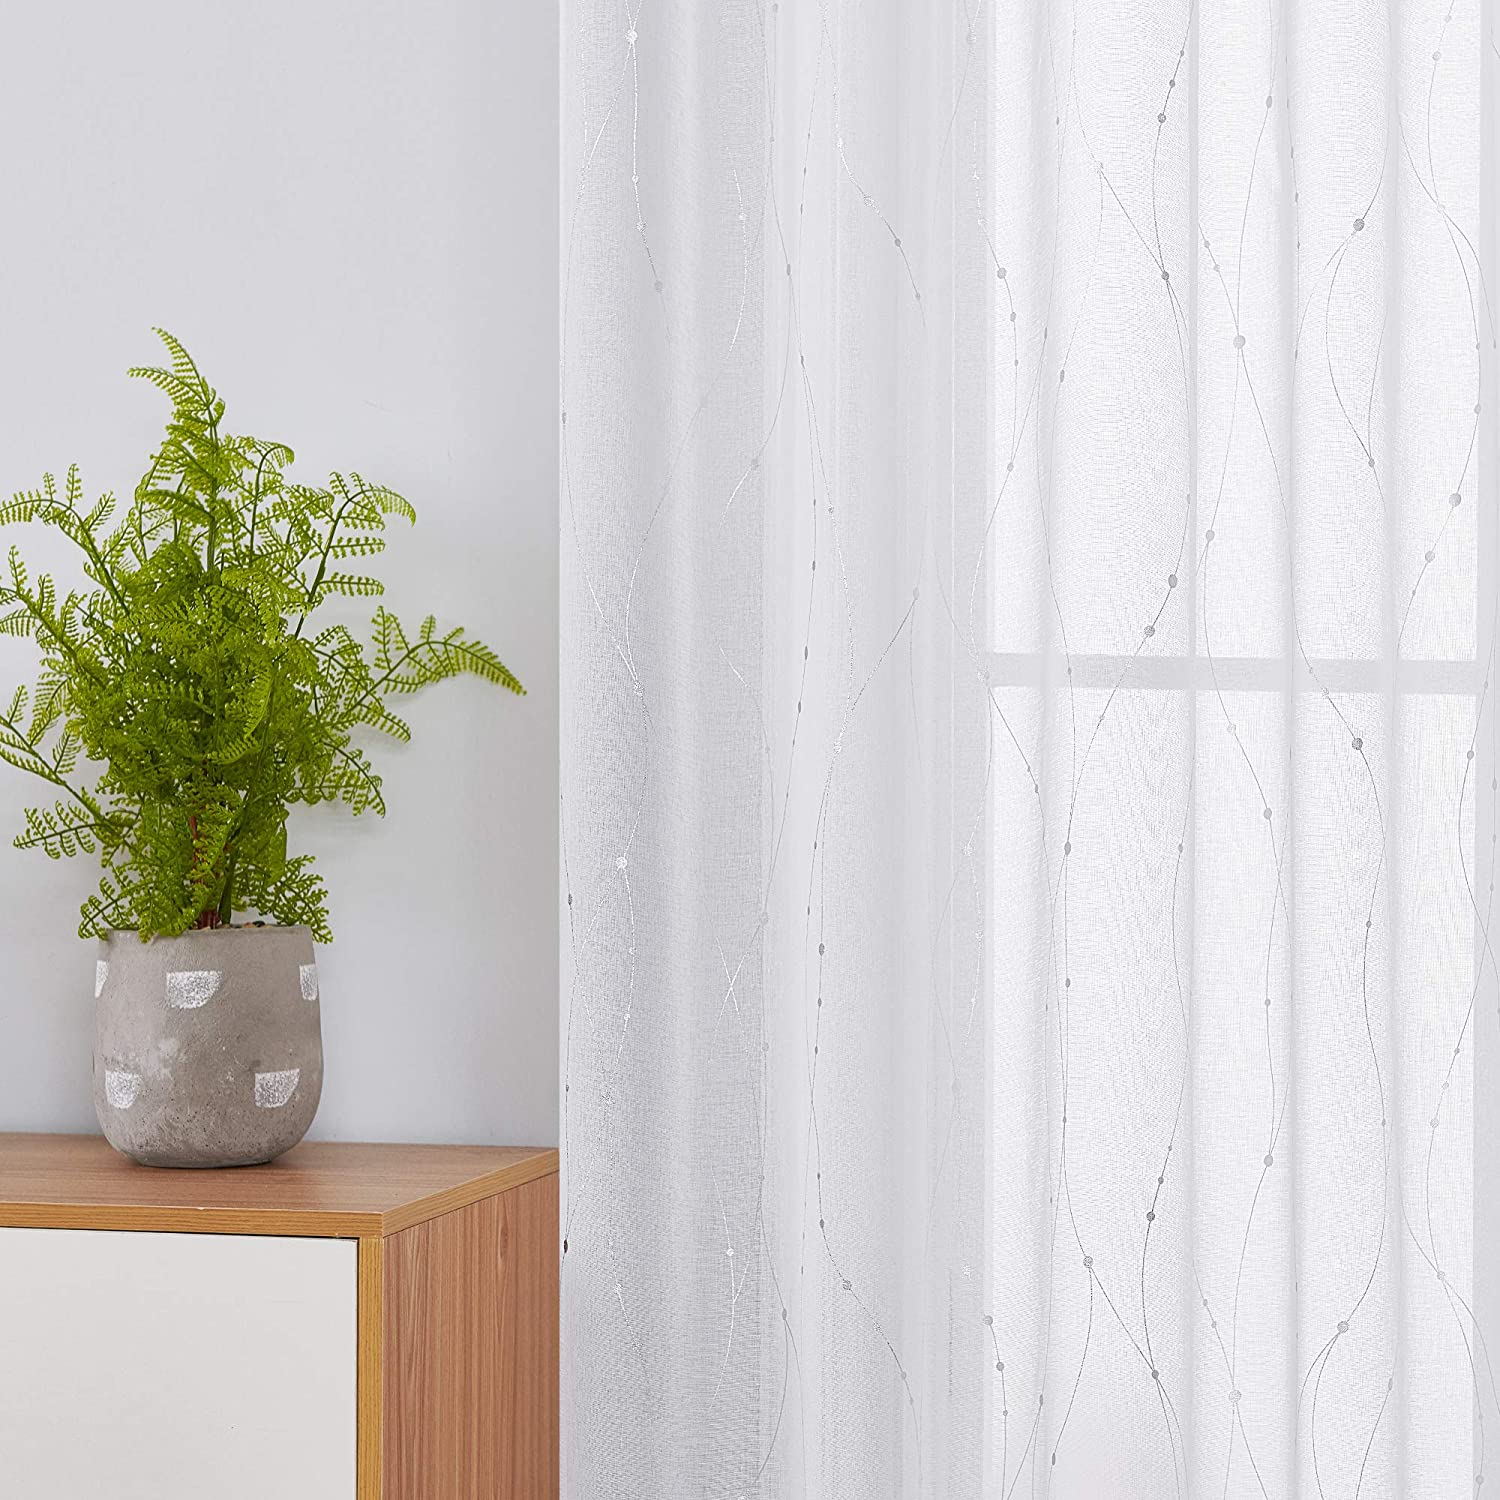 Deconovo Foil Printed Sheer Curtains Drapes Dotted Line Super Soft Decorative Semi Transparent Eyelet Voile Faux Linen Curtains for Bedroom 55 x 72 Inch White 1 Pair